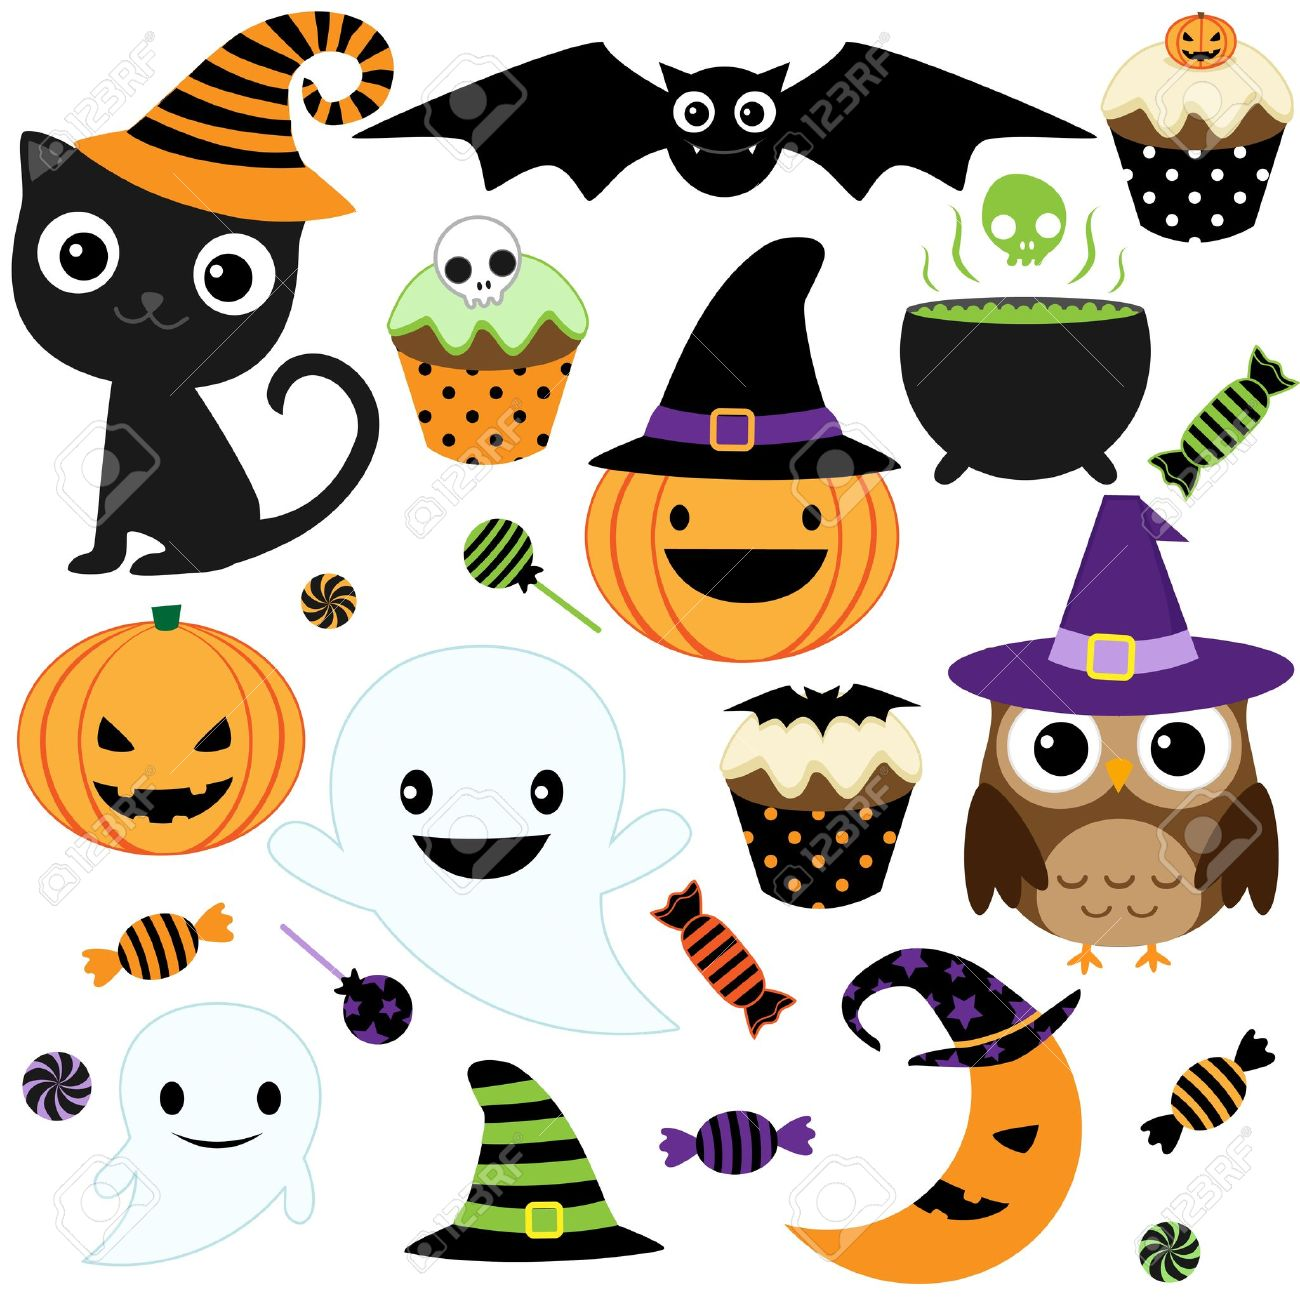 Set of cute vector Halloween elements, objects and icons for your design Stock Vector - 12393574